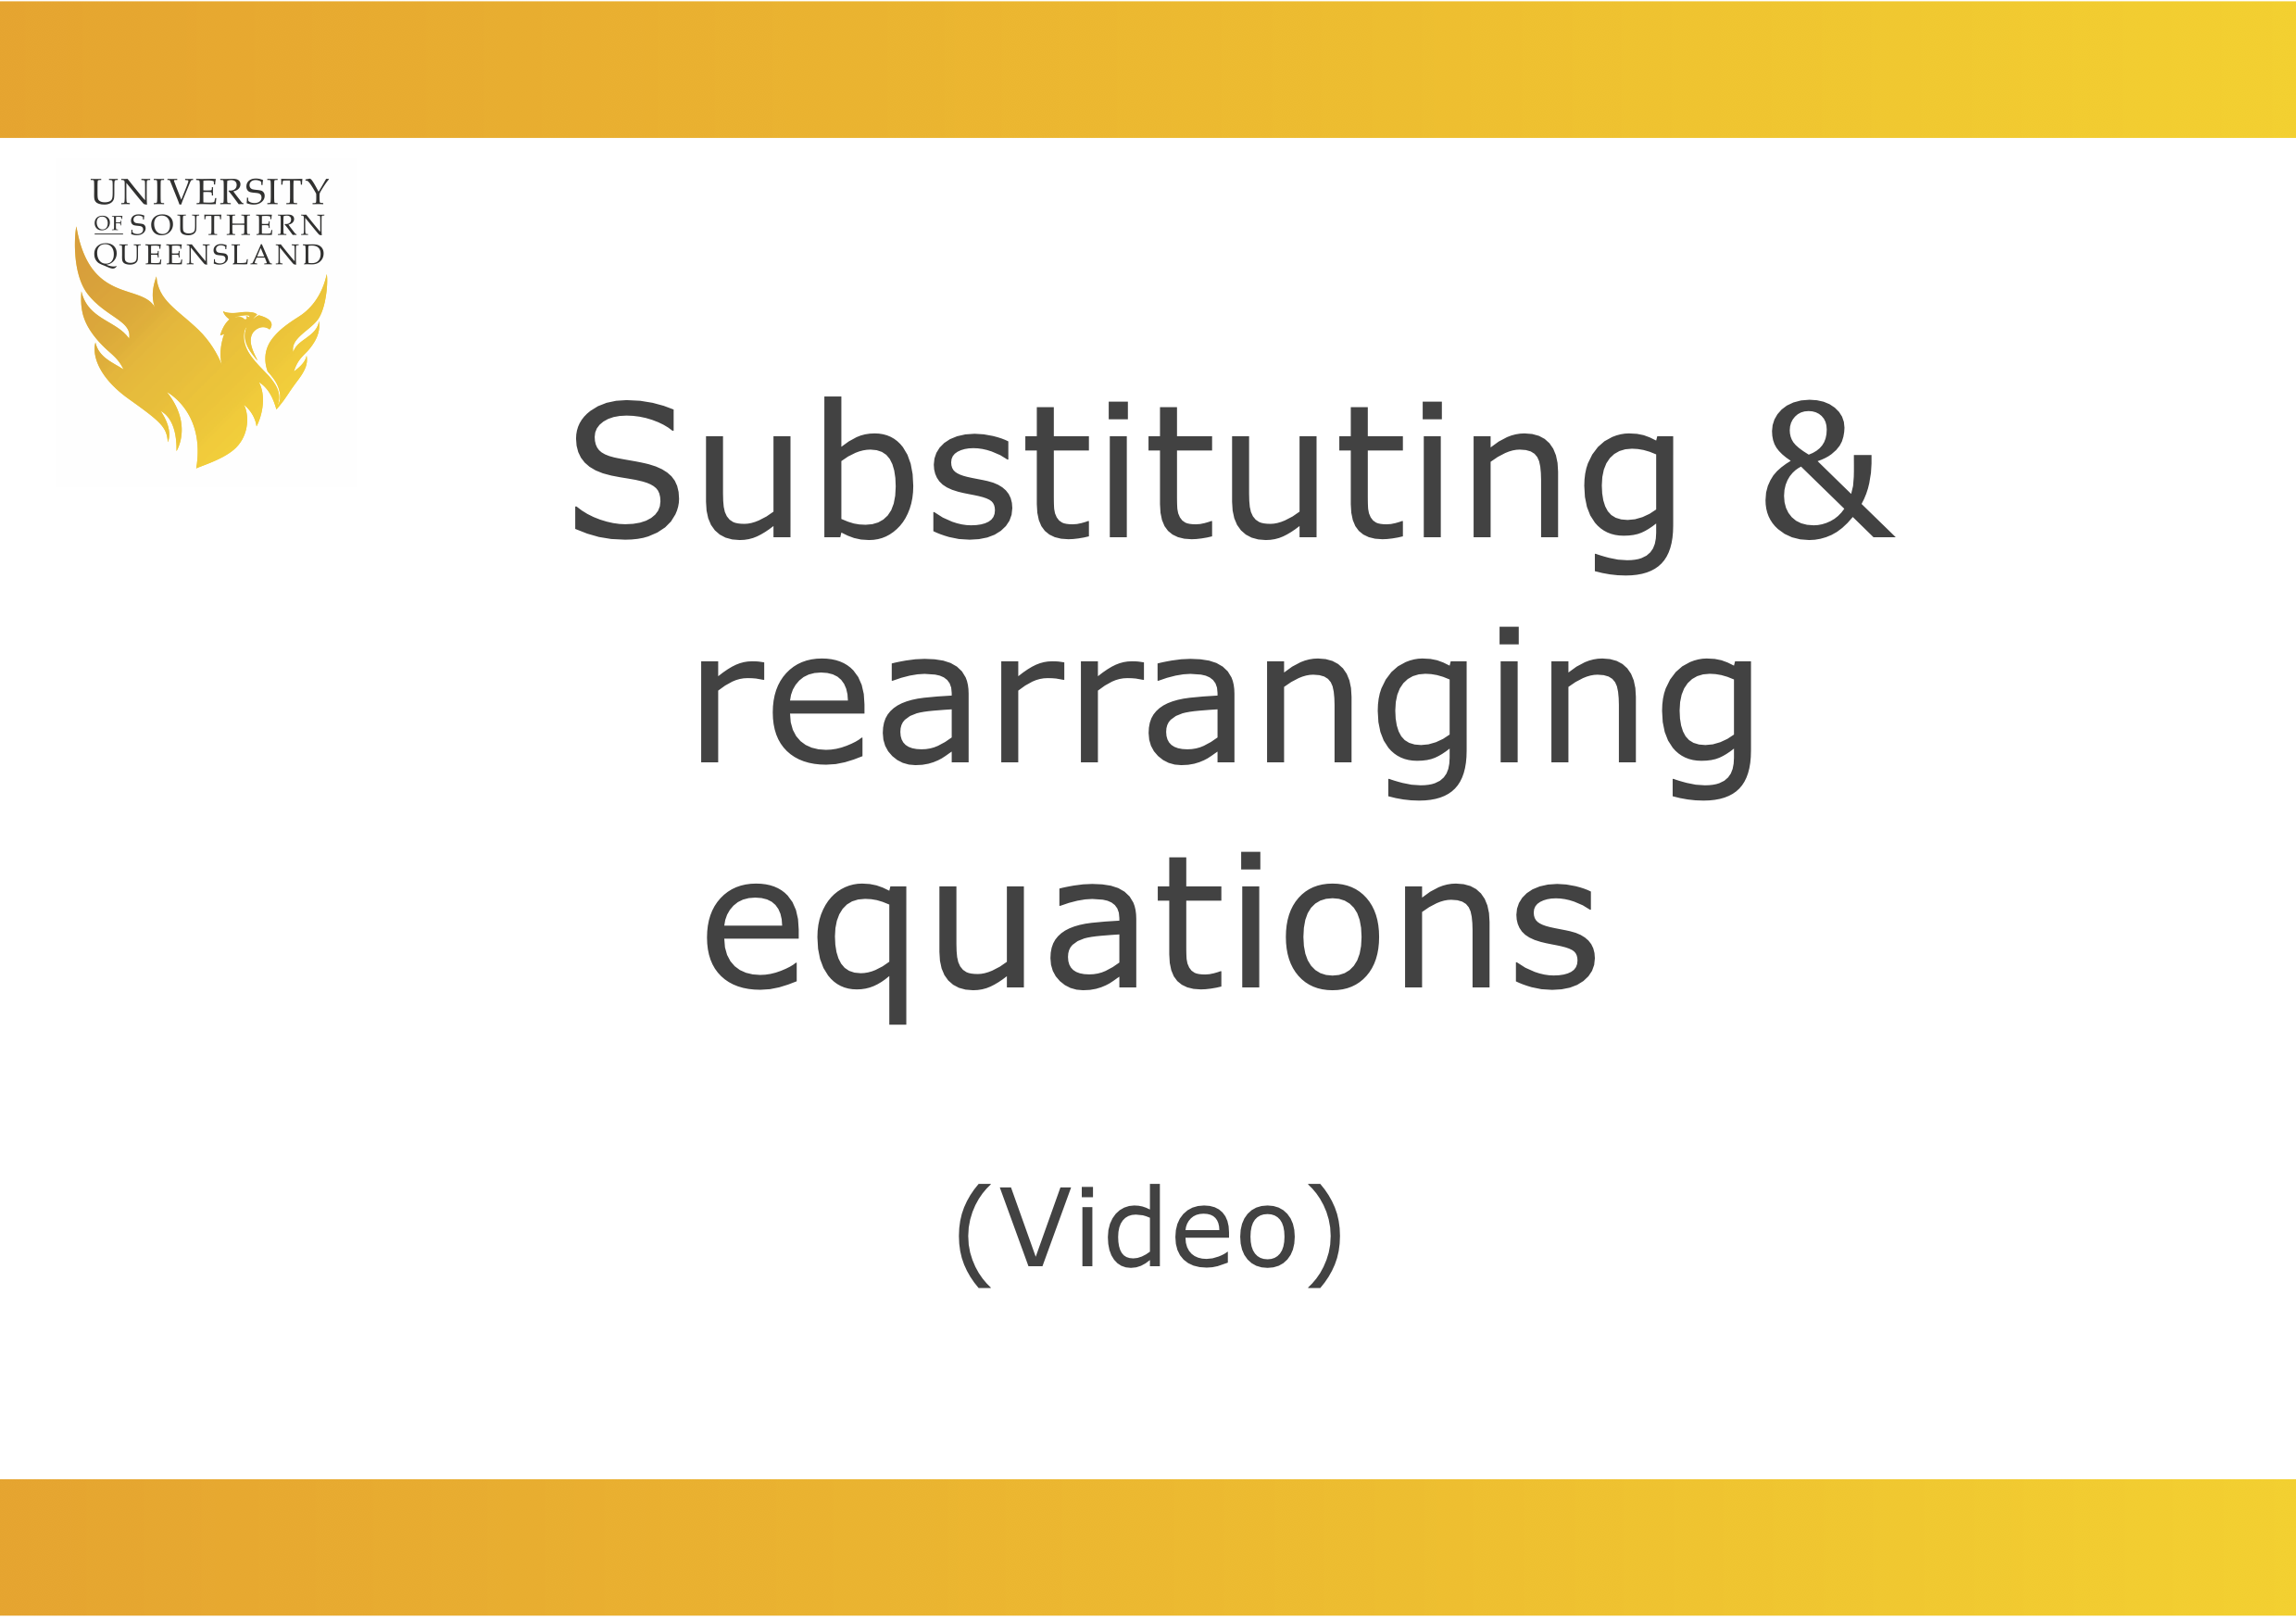 Substituting and rearranging equations video